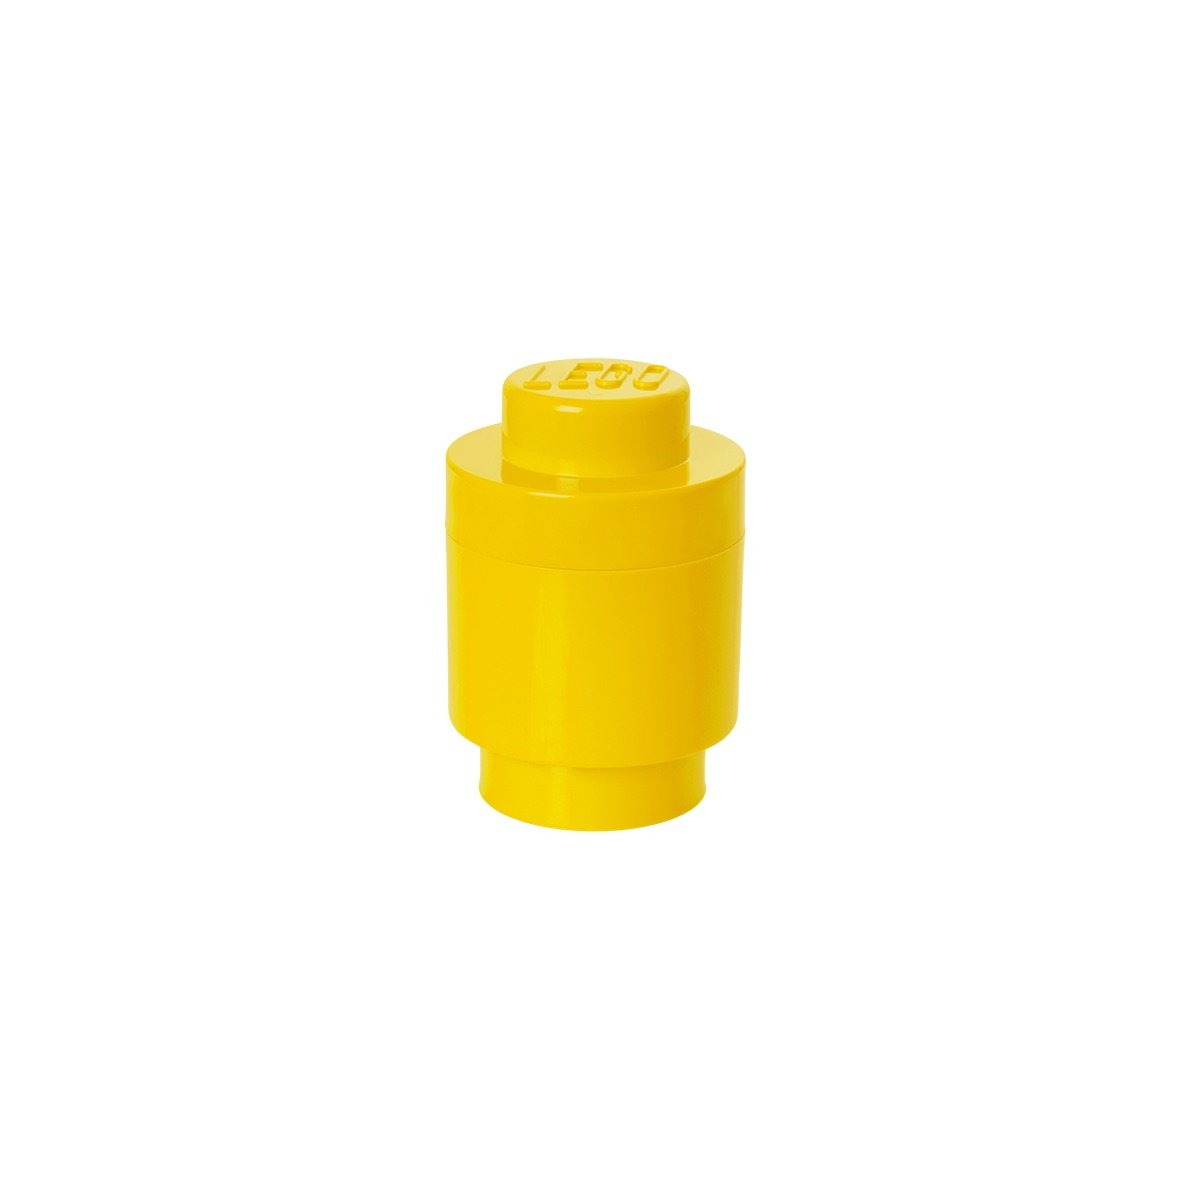 LEGO Round Storage Box 1, Yellow